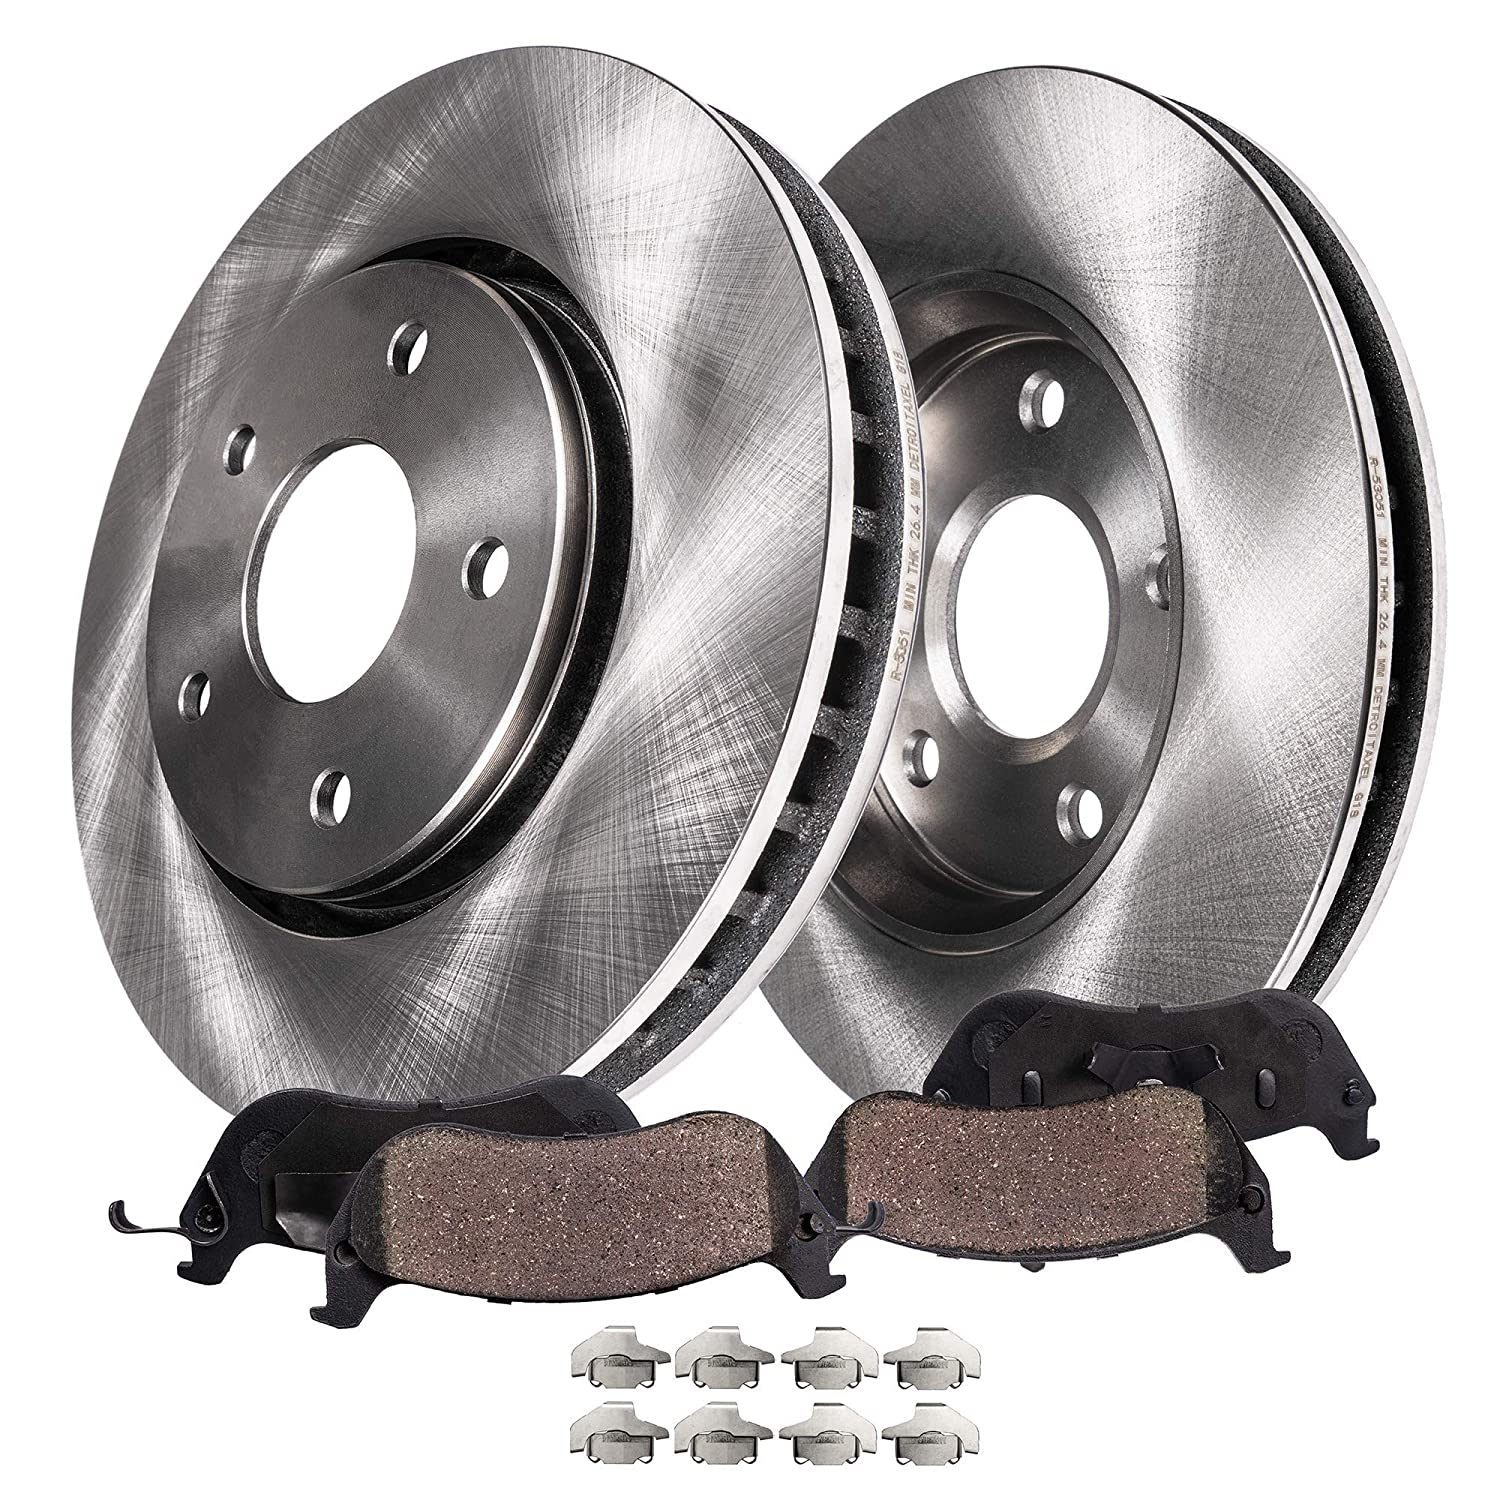 Detroit Axle - Front Brake Rotors & Ceramic Pads w/Clips Hardware Kit  Premium GRADE for 07-18 Escalade, ESV, Chevy Tahoe, GMC Yukon - [08-18